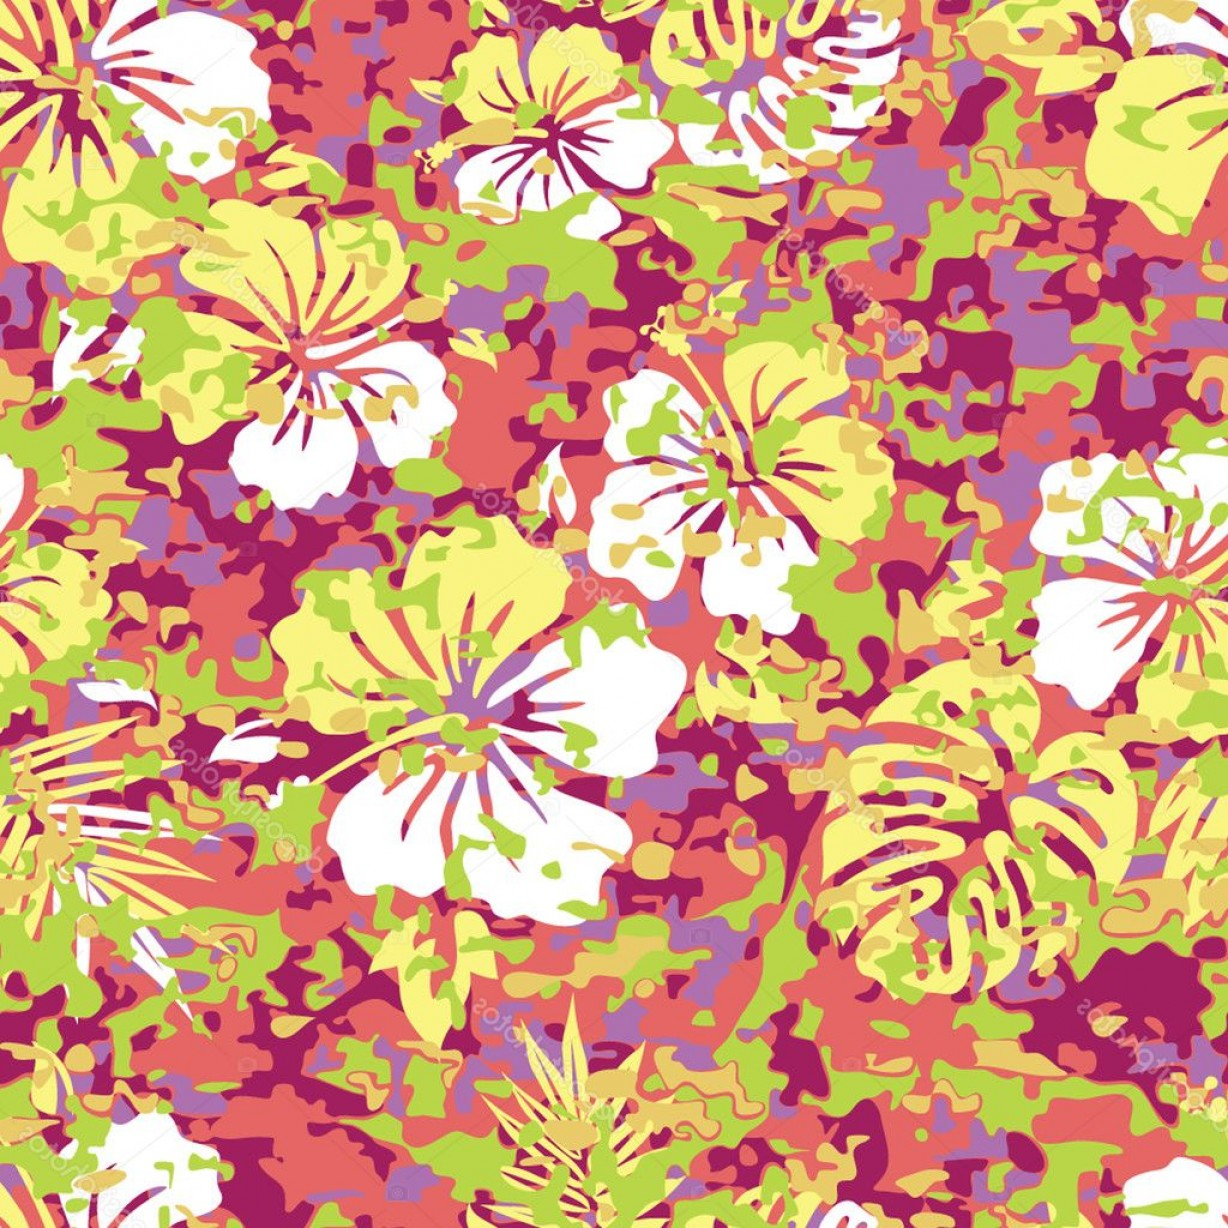 Hawaiian Pattern Vector: Stock Illustration Aloha Hawaiian Shirt Camouflage Pattern